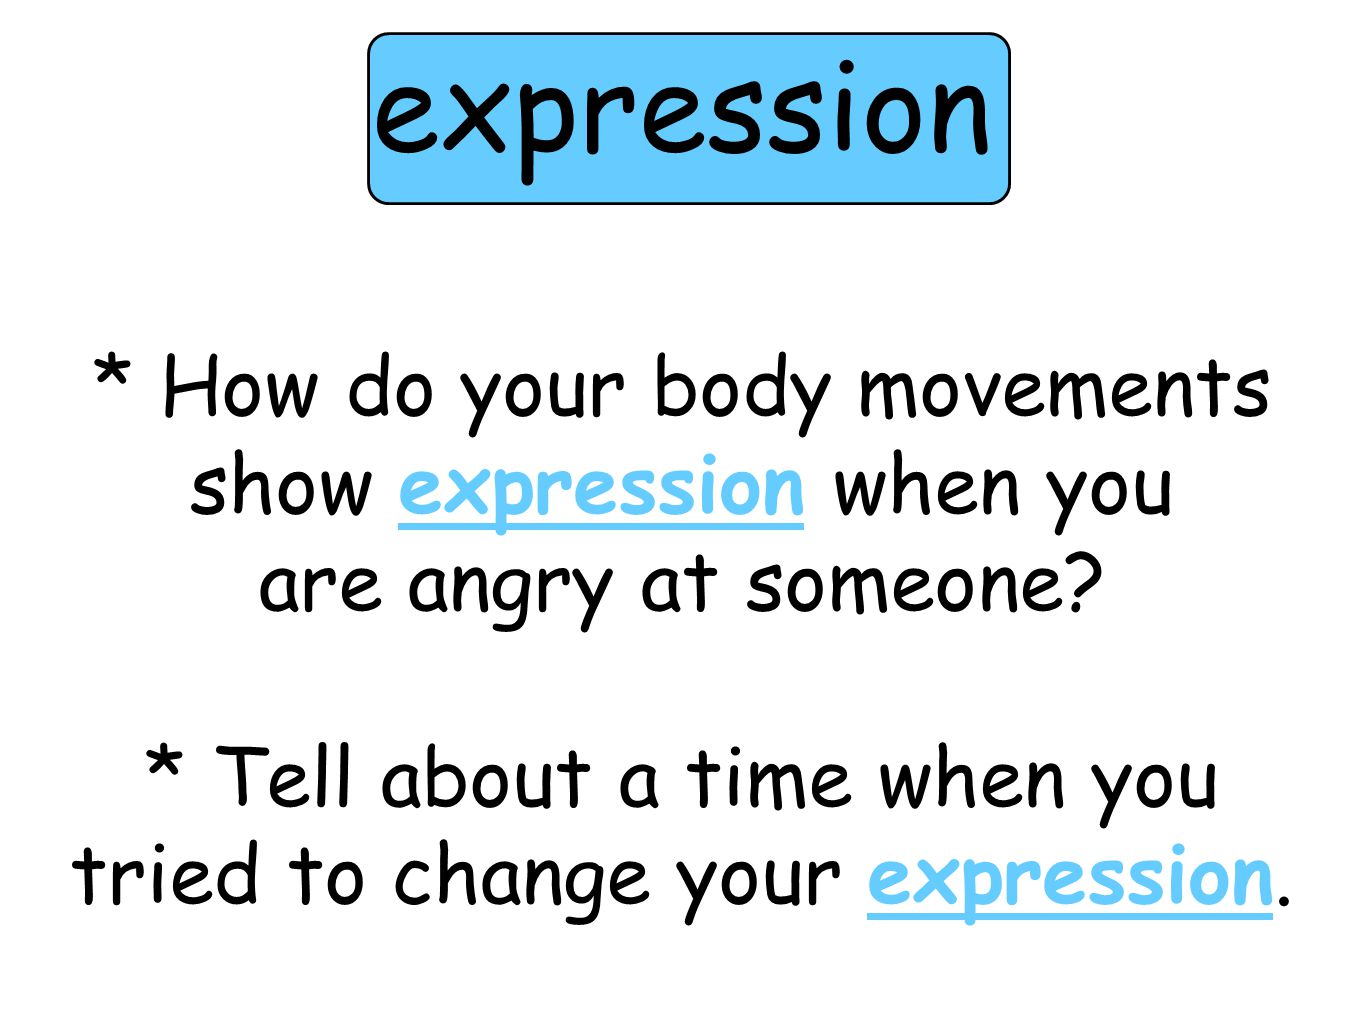 * How do your body movements show expression when you are angry at someone.